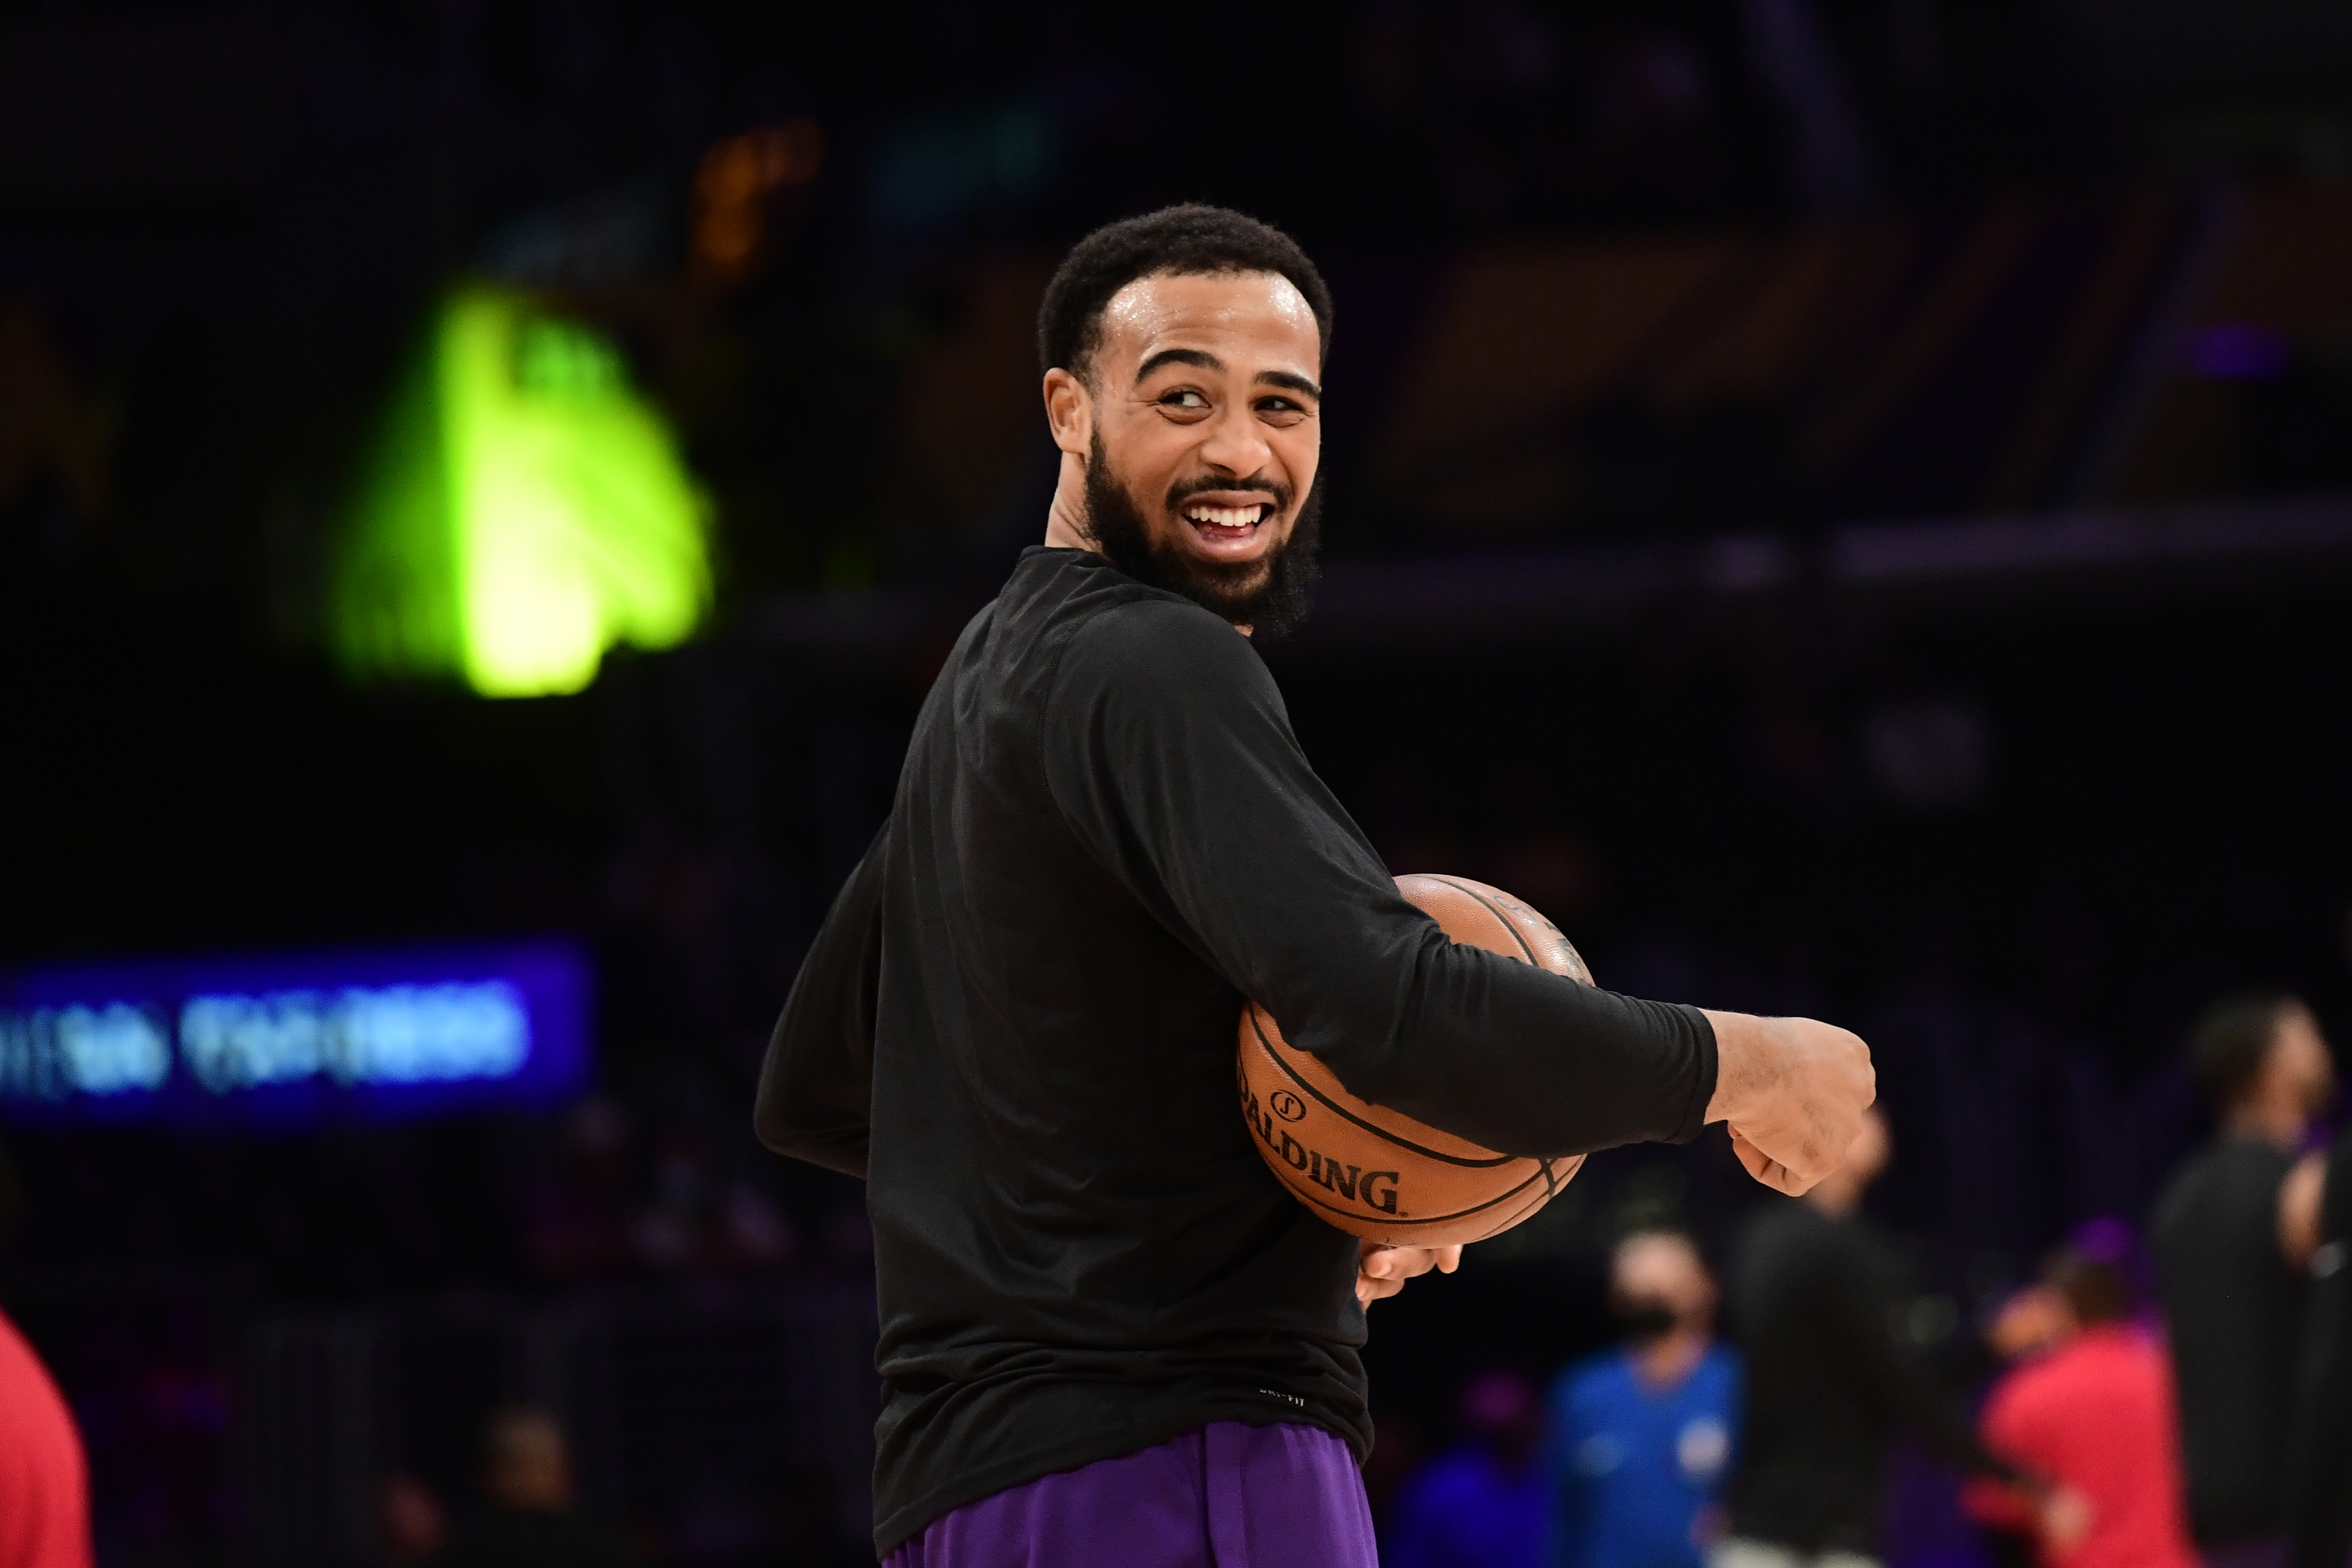 Talen Horton-Tucker of the Los Angeles Lakers smiles before the game against the Phoenix Suns during Round 1, Game 6 of the 2021 NBA Playoffs on June 3, 2021 at STAPLES Center in Los Angeles, California.